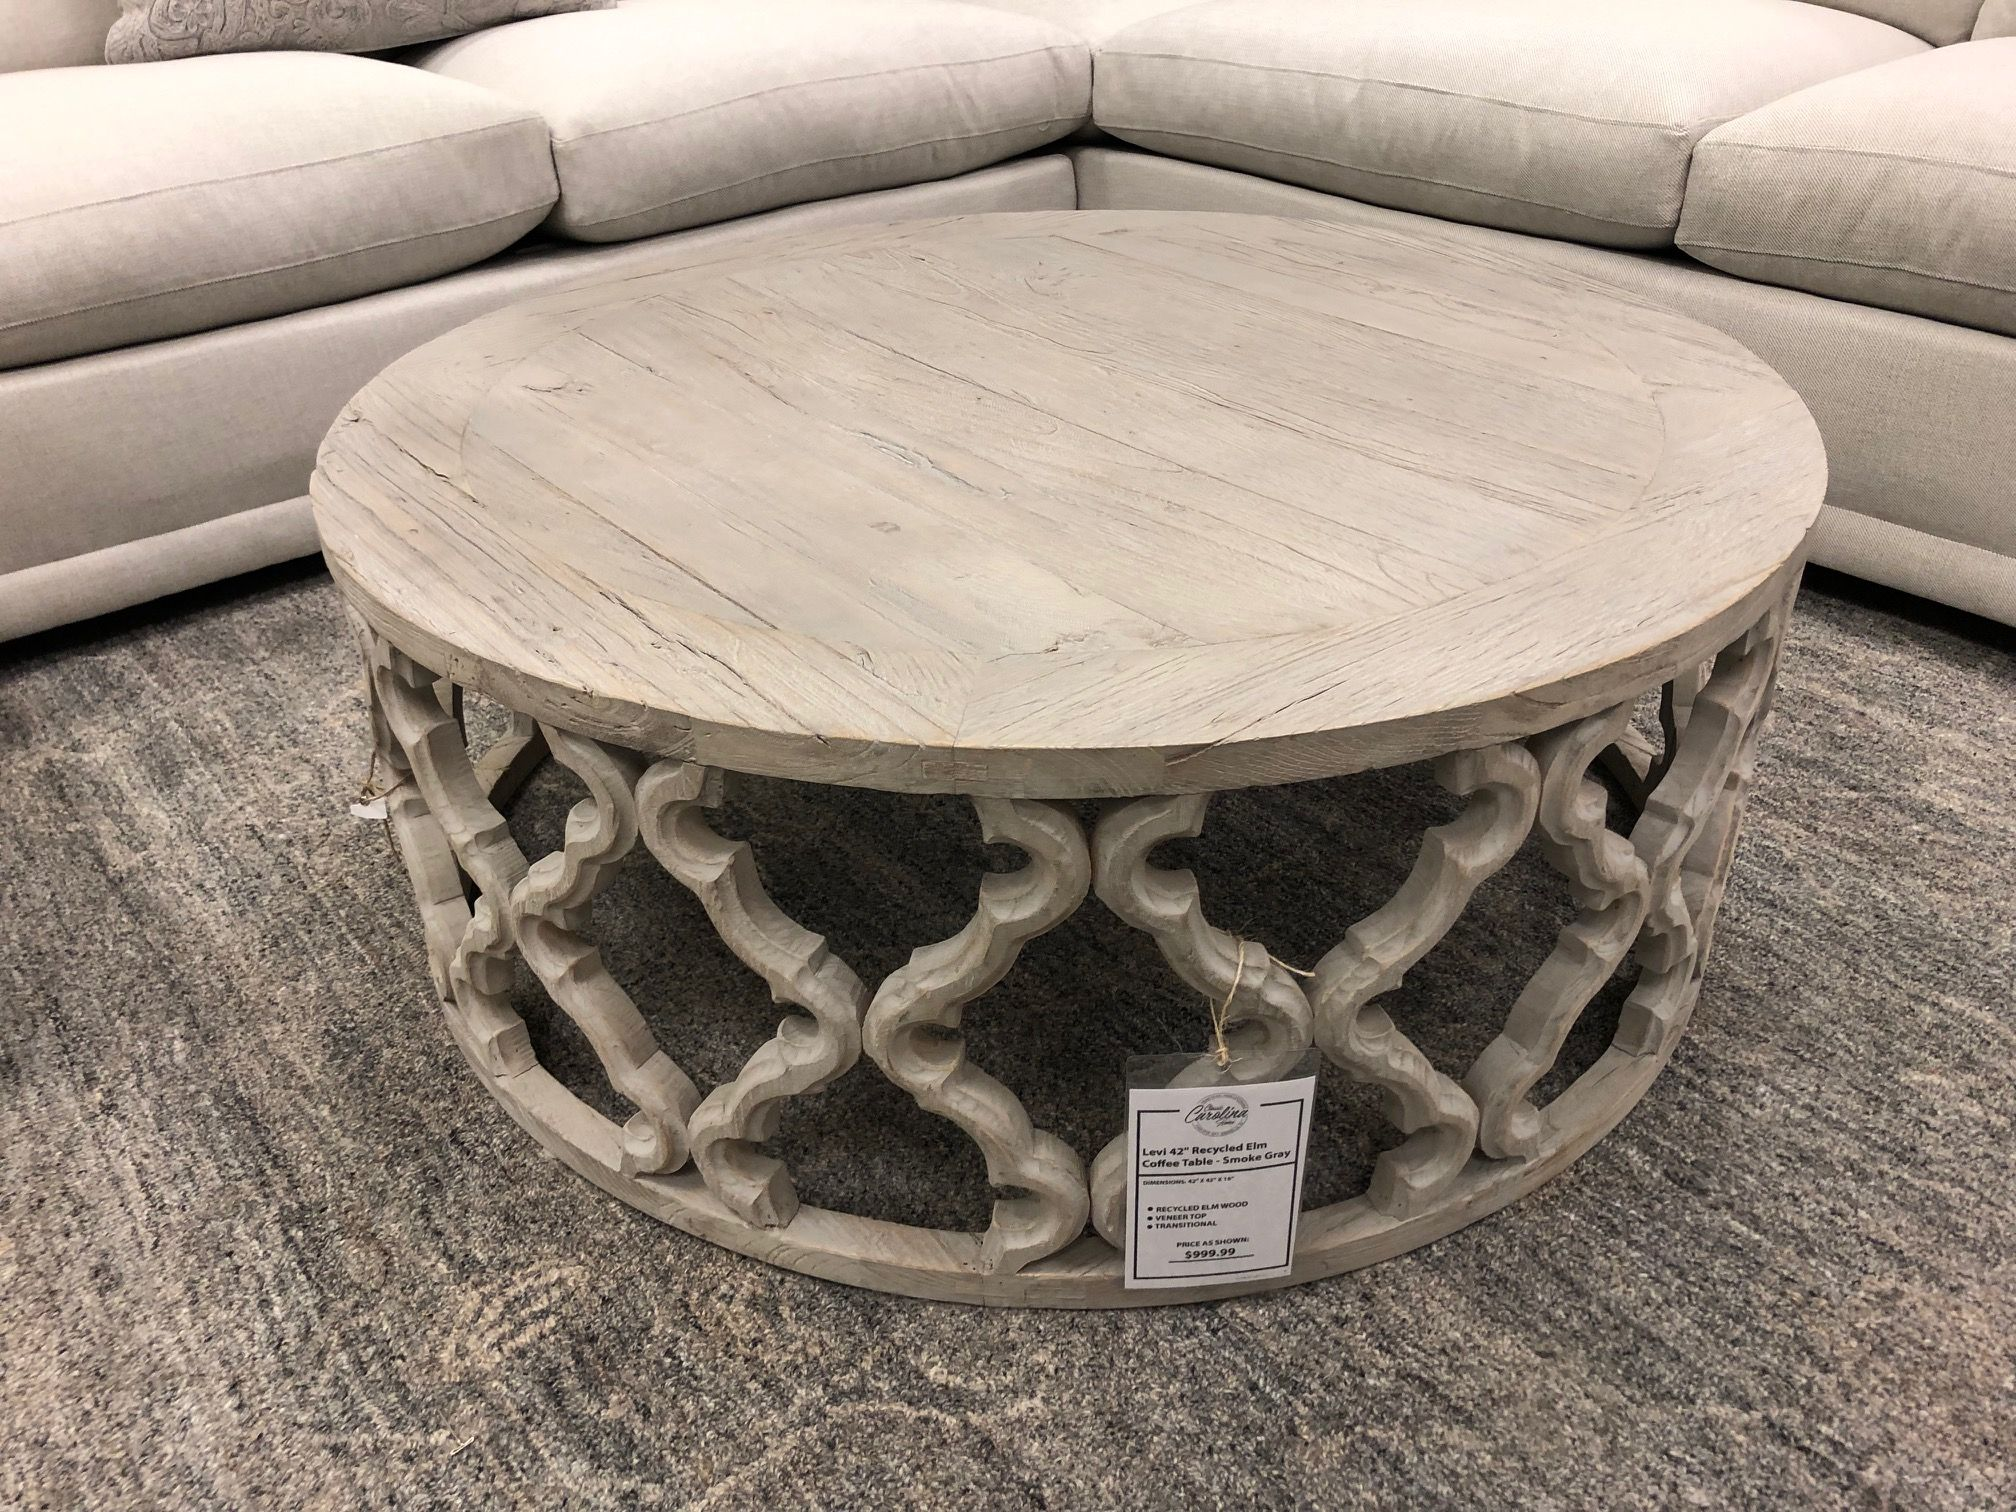 Extremely Large Natural Cleaned Solid Oak Round Coffee Table Low Table Coffee Table Low Tables Reclaimed Oak Beams [ 1000 x 1500 Pixel ]